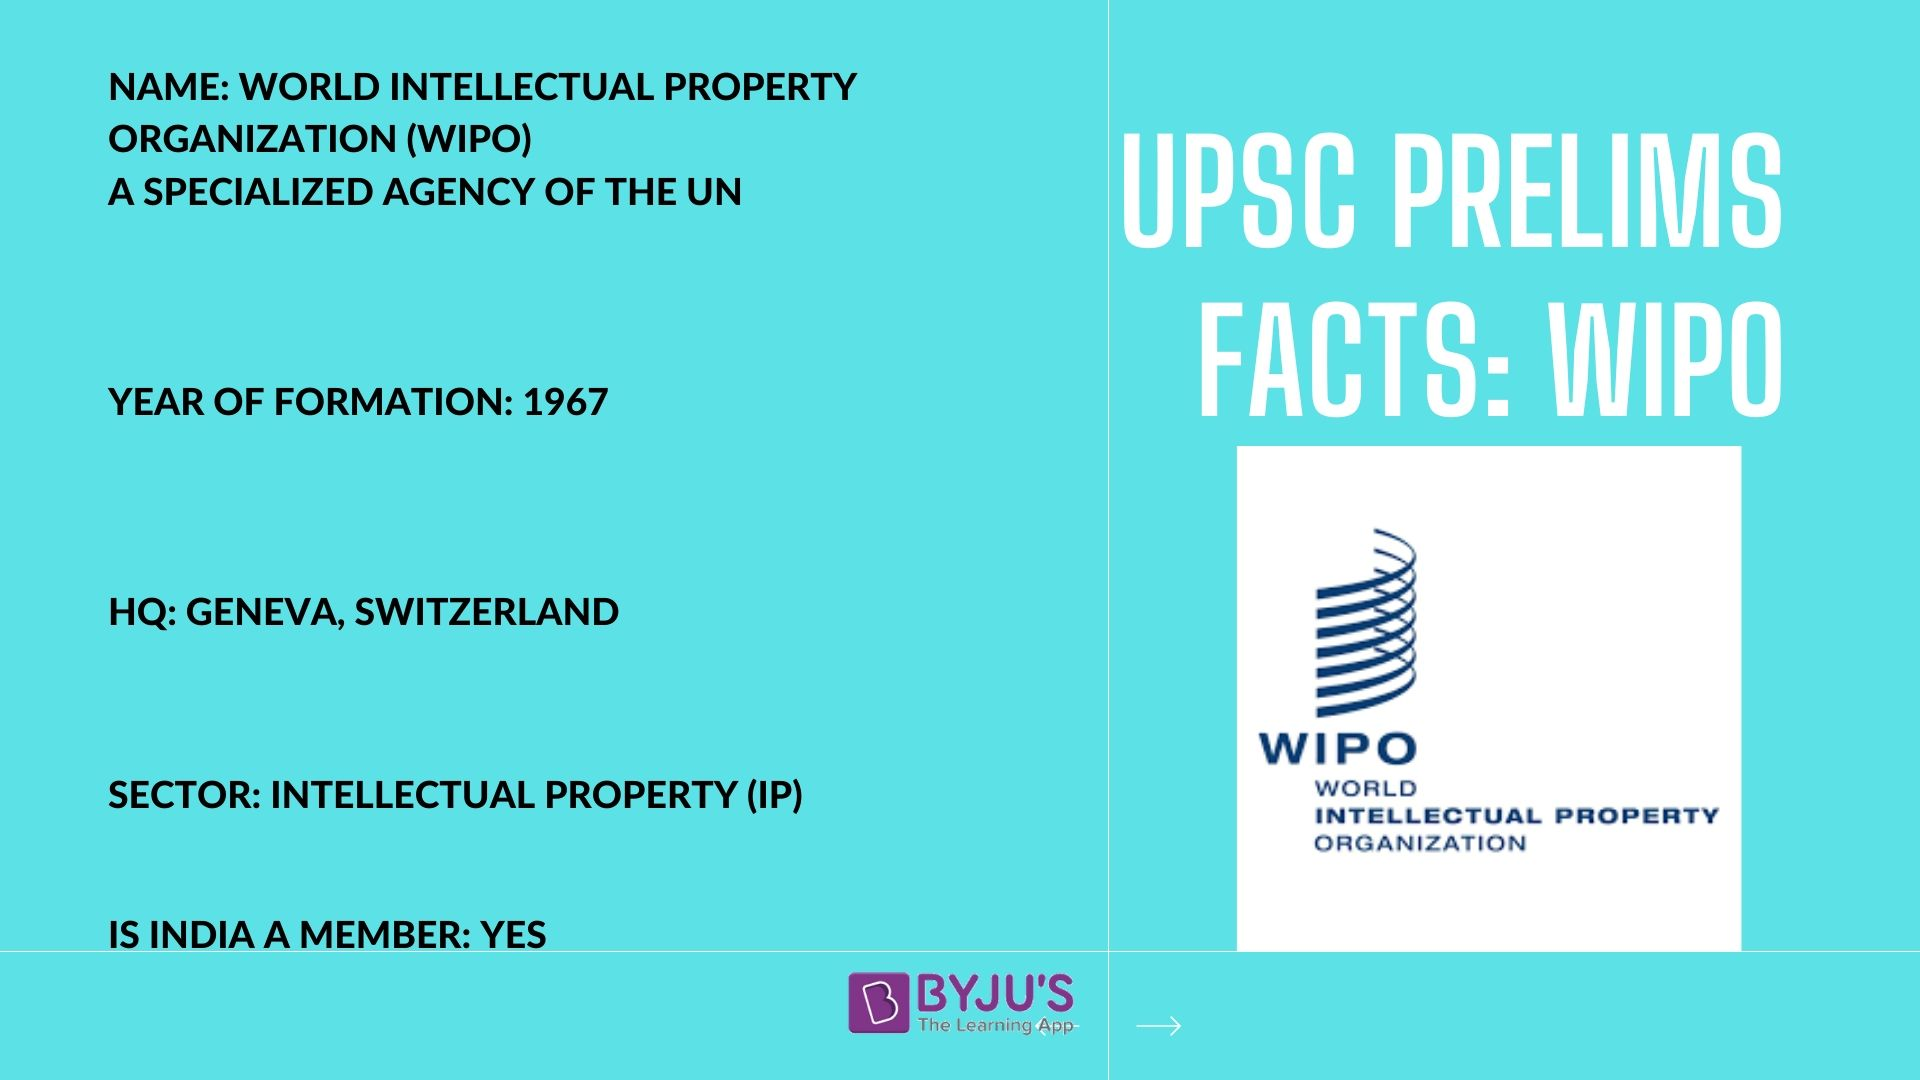 UPSC Prelims Facts - WIPO